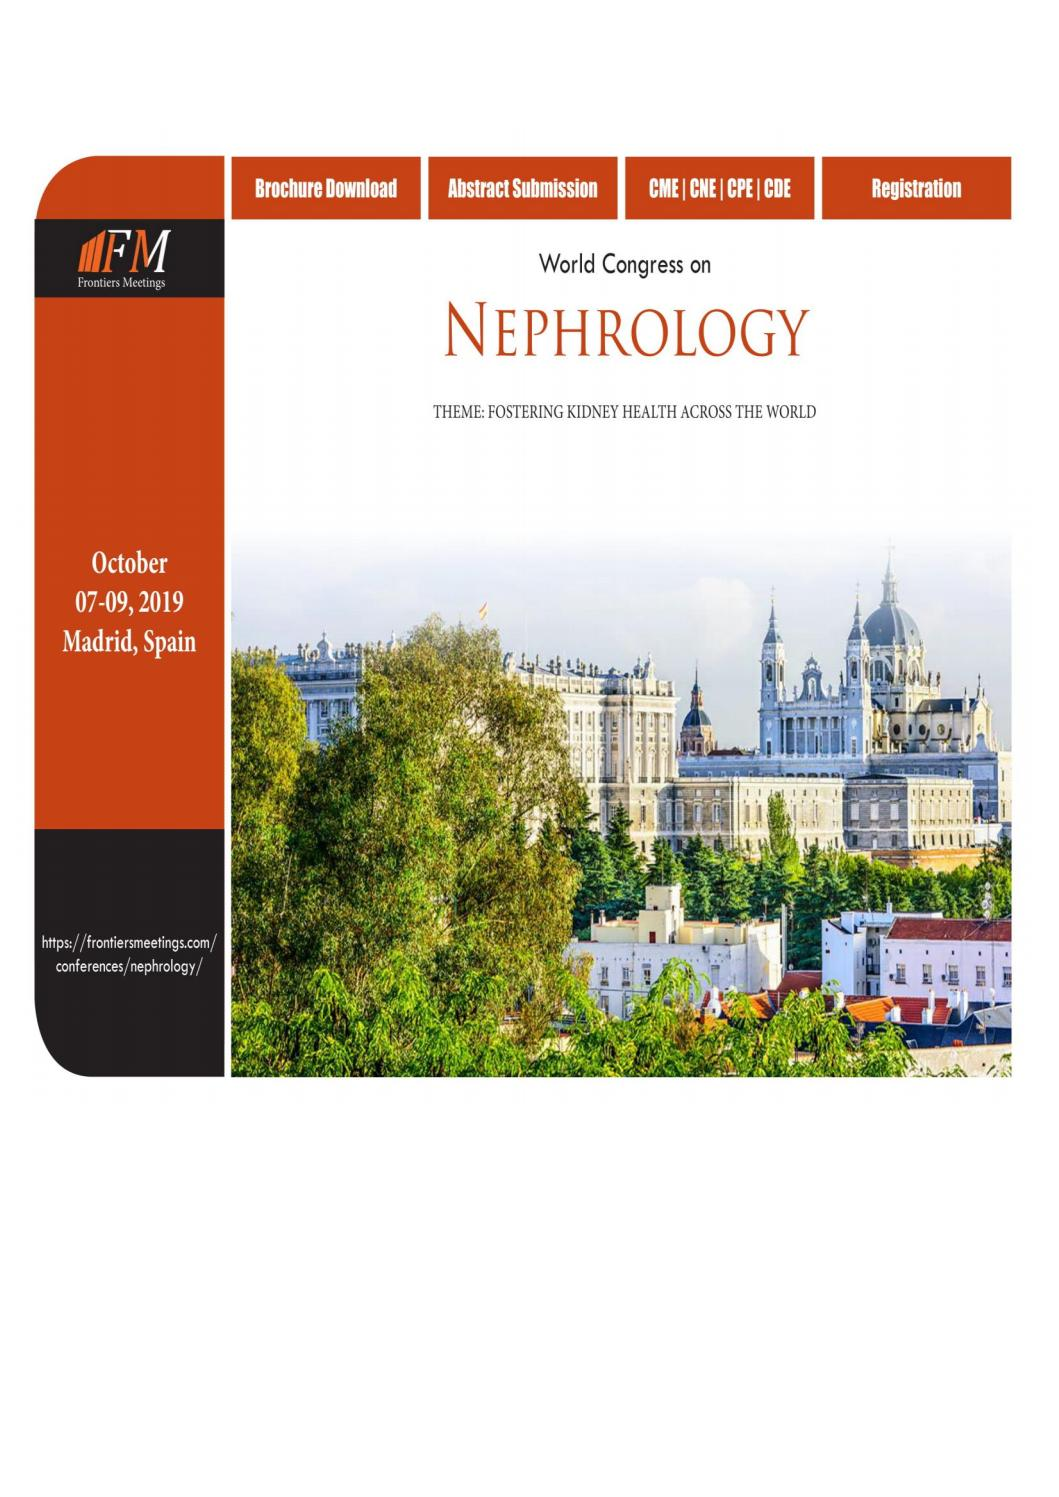 World Congress on Nephrology Spain October 07-09, 2019 by